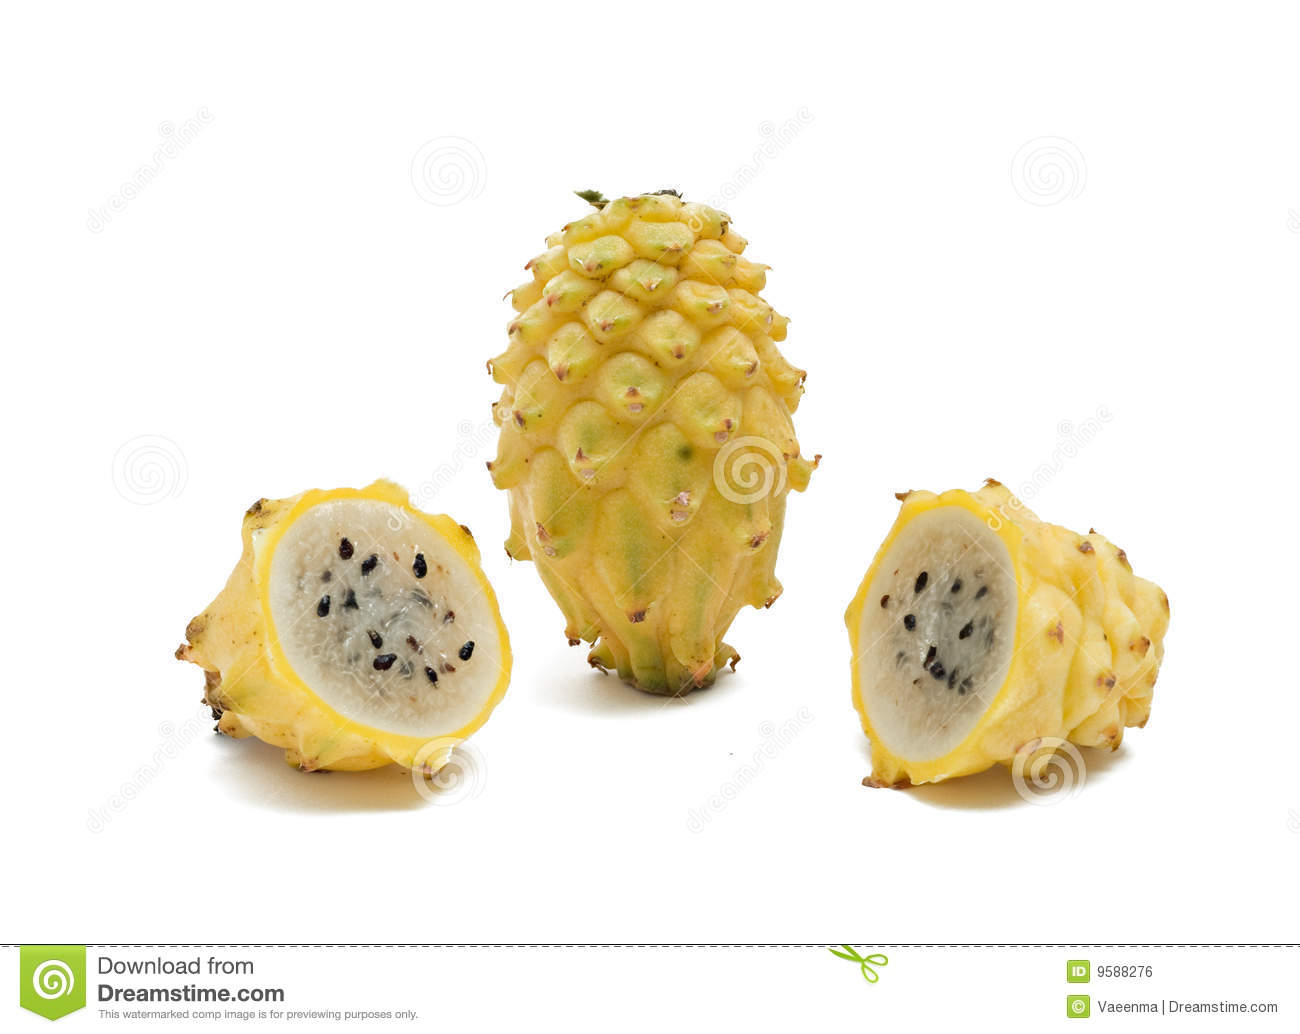 Yellow Dragon Fruit And Its Sections Royalty Free Stock Image - Image ...